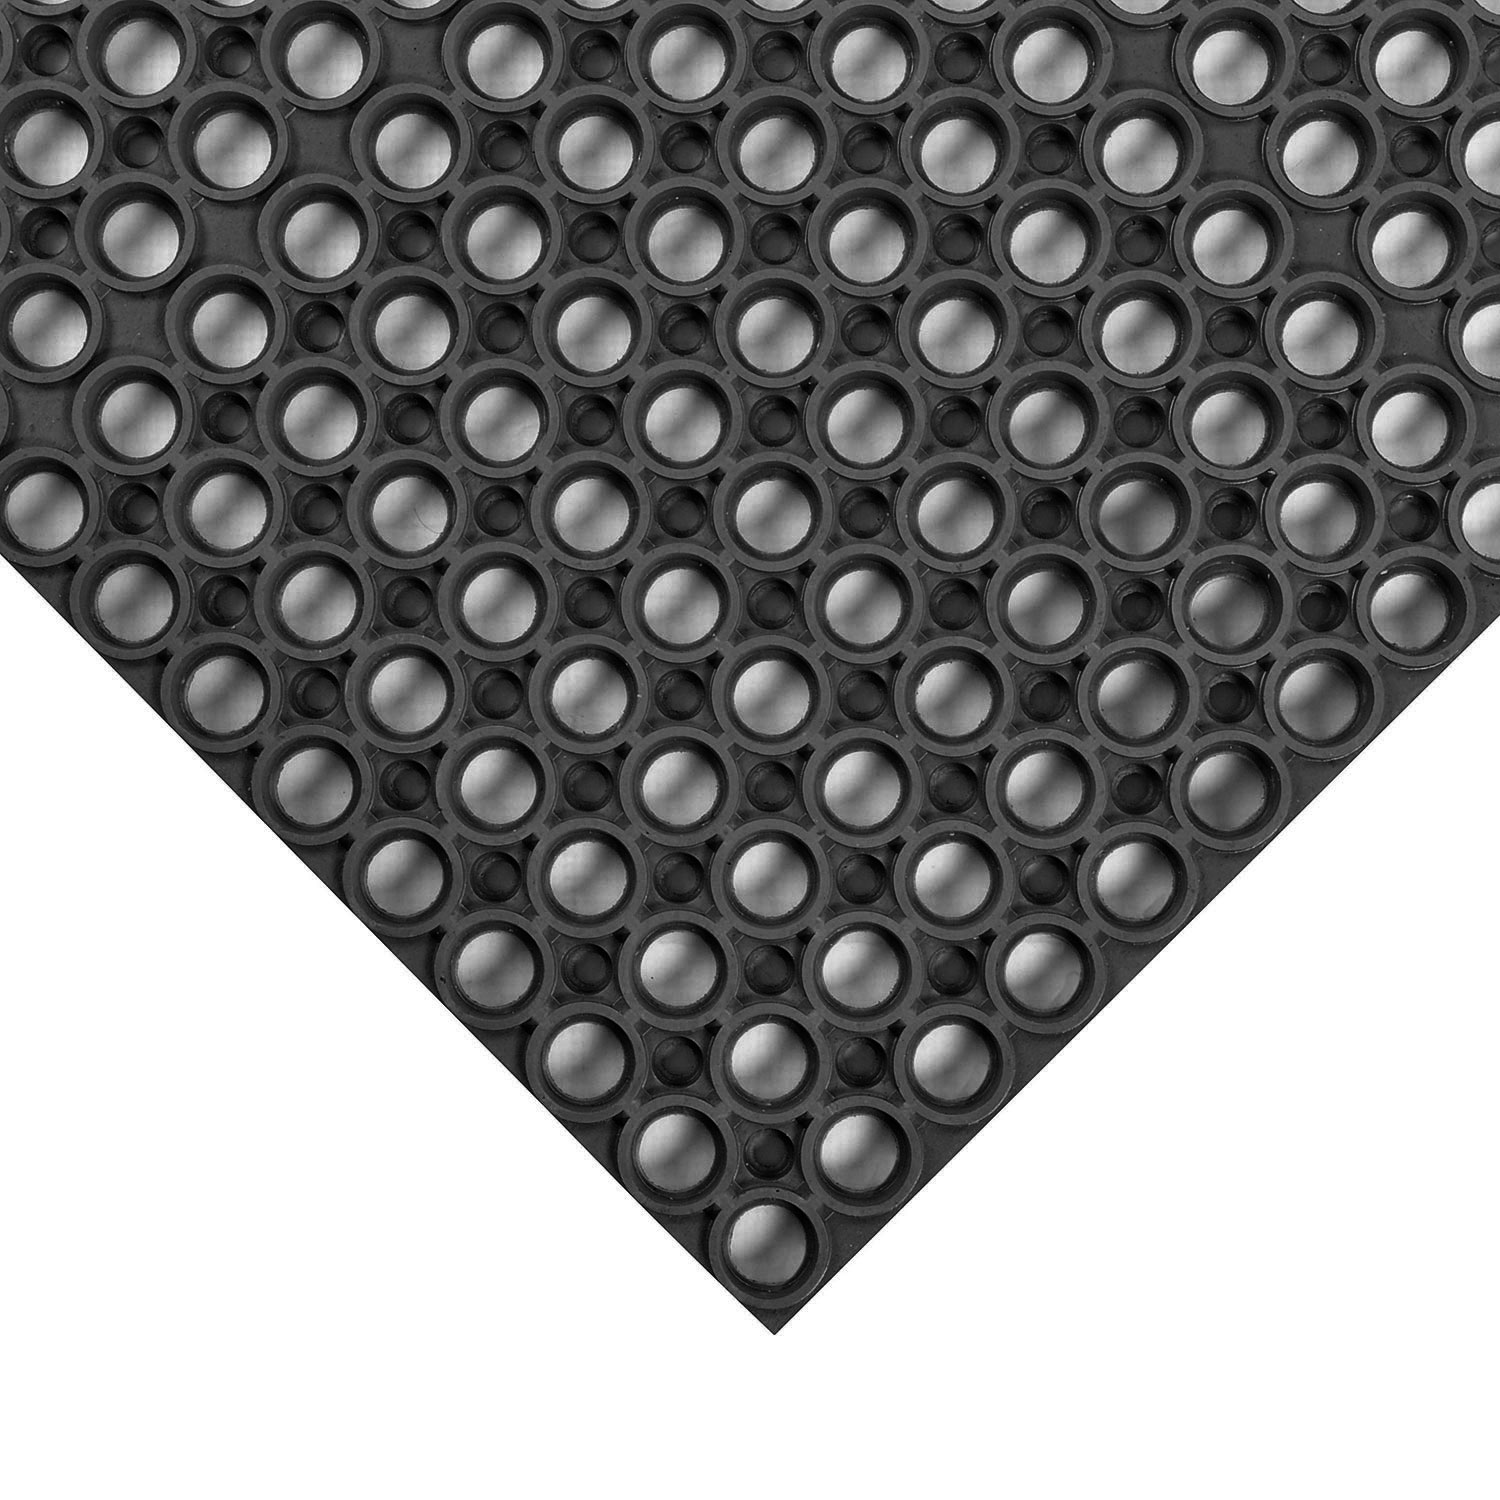 Notrax T25S0035BL Apex Challenger Anti-Fatigue Floor Mat - 3' x 5', Rubber, Black